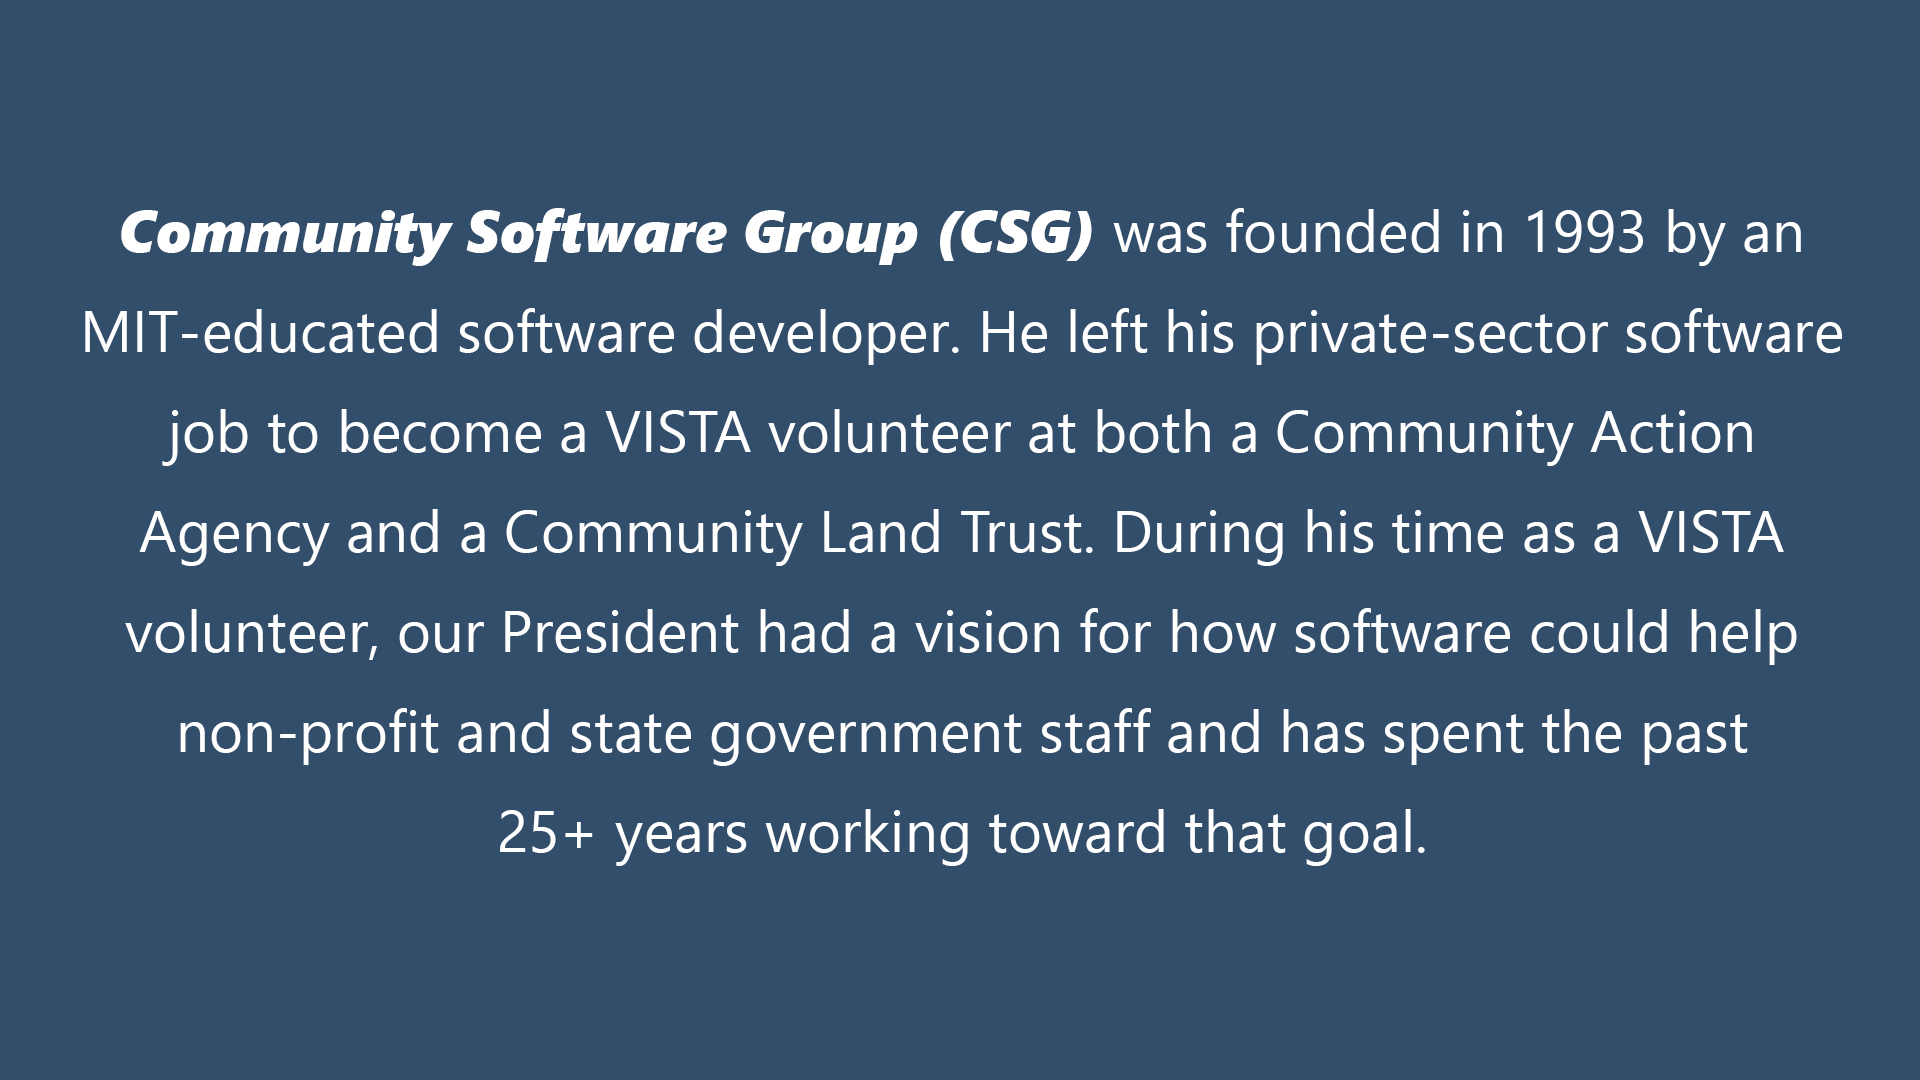 Community Software Group was founded in 1993 by an MIT-educated software developer.